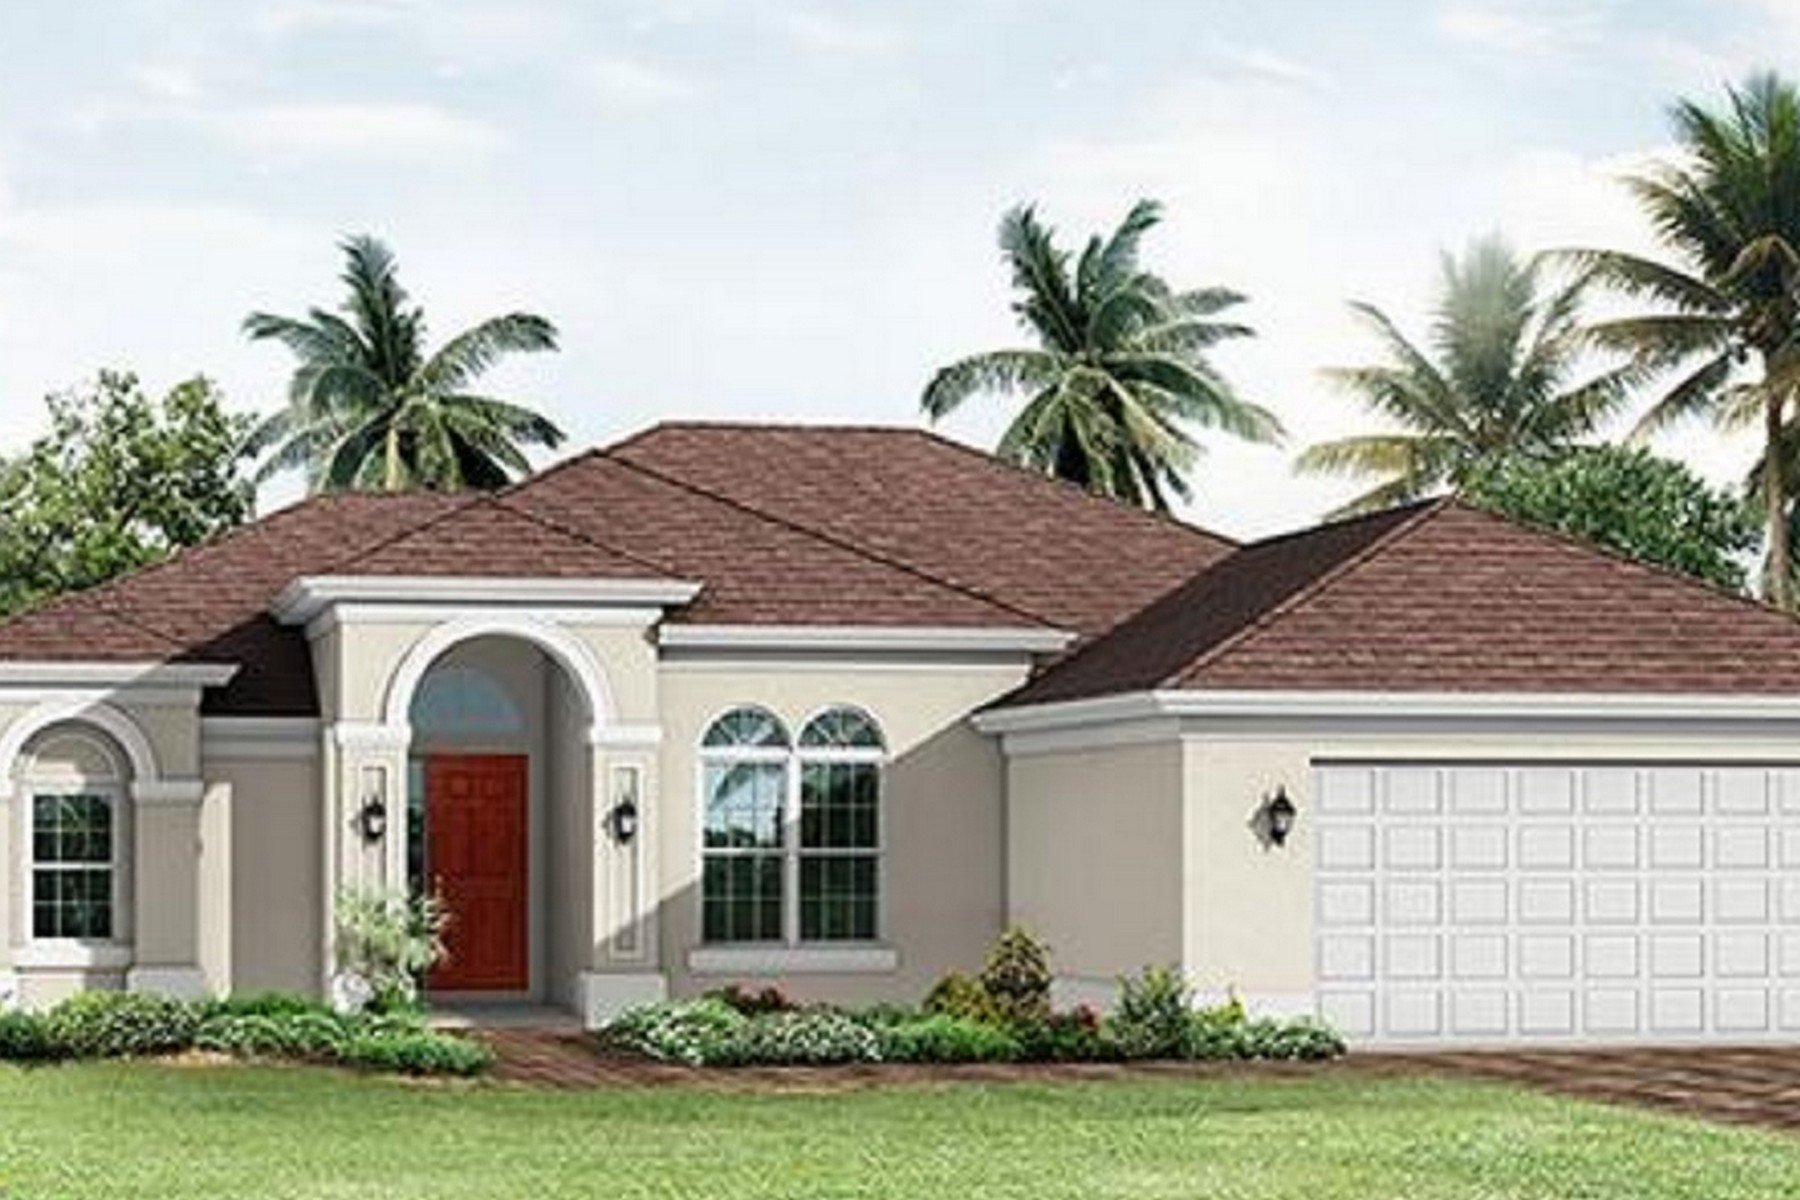 Casa Unifamiliar por un Venta en Lovely Home 5812 N Dooley Circle Port St. Lucie, Florida, 34953 Estados Unidos